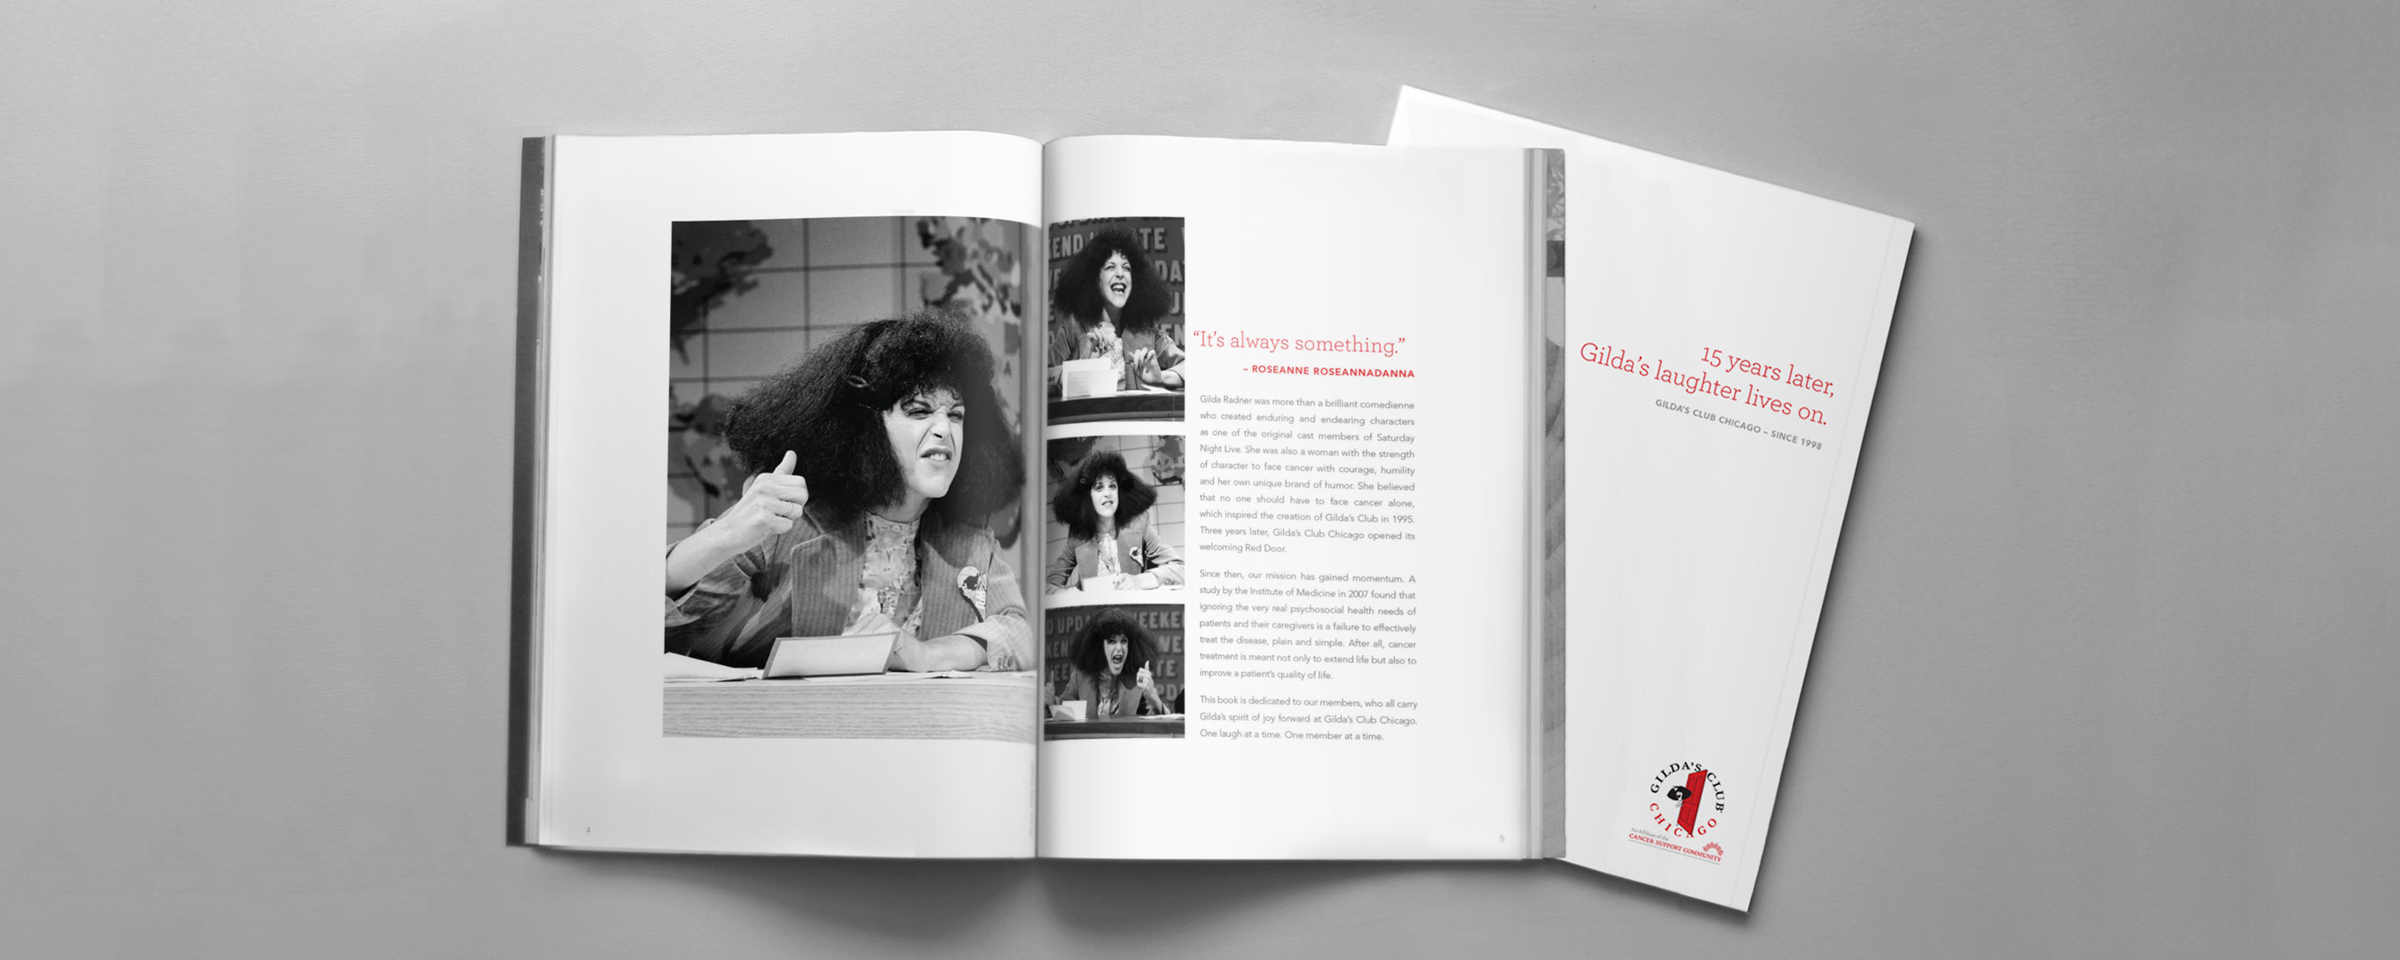 Spread from Gilda's Club Chicago anniversary book created by Blue Flame Thinking.